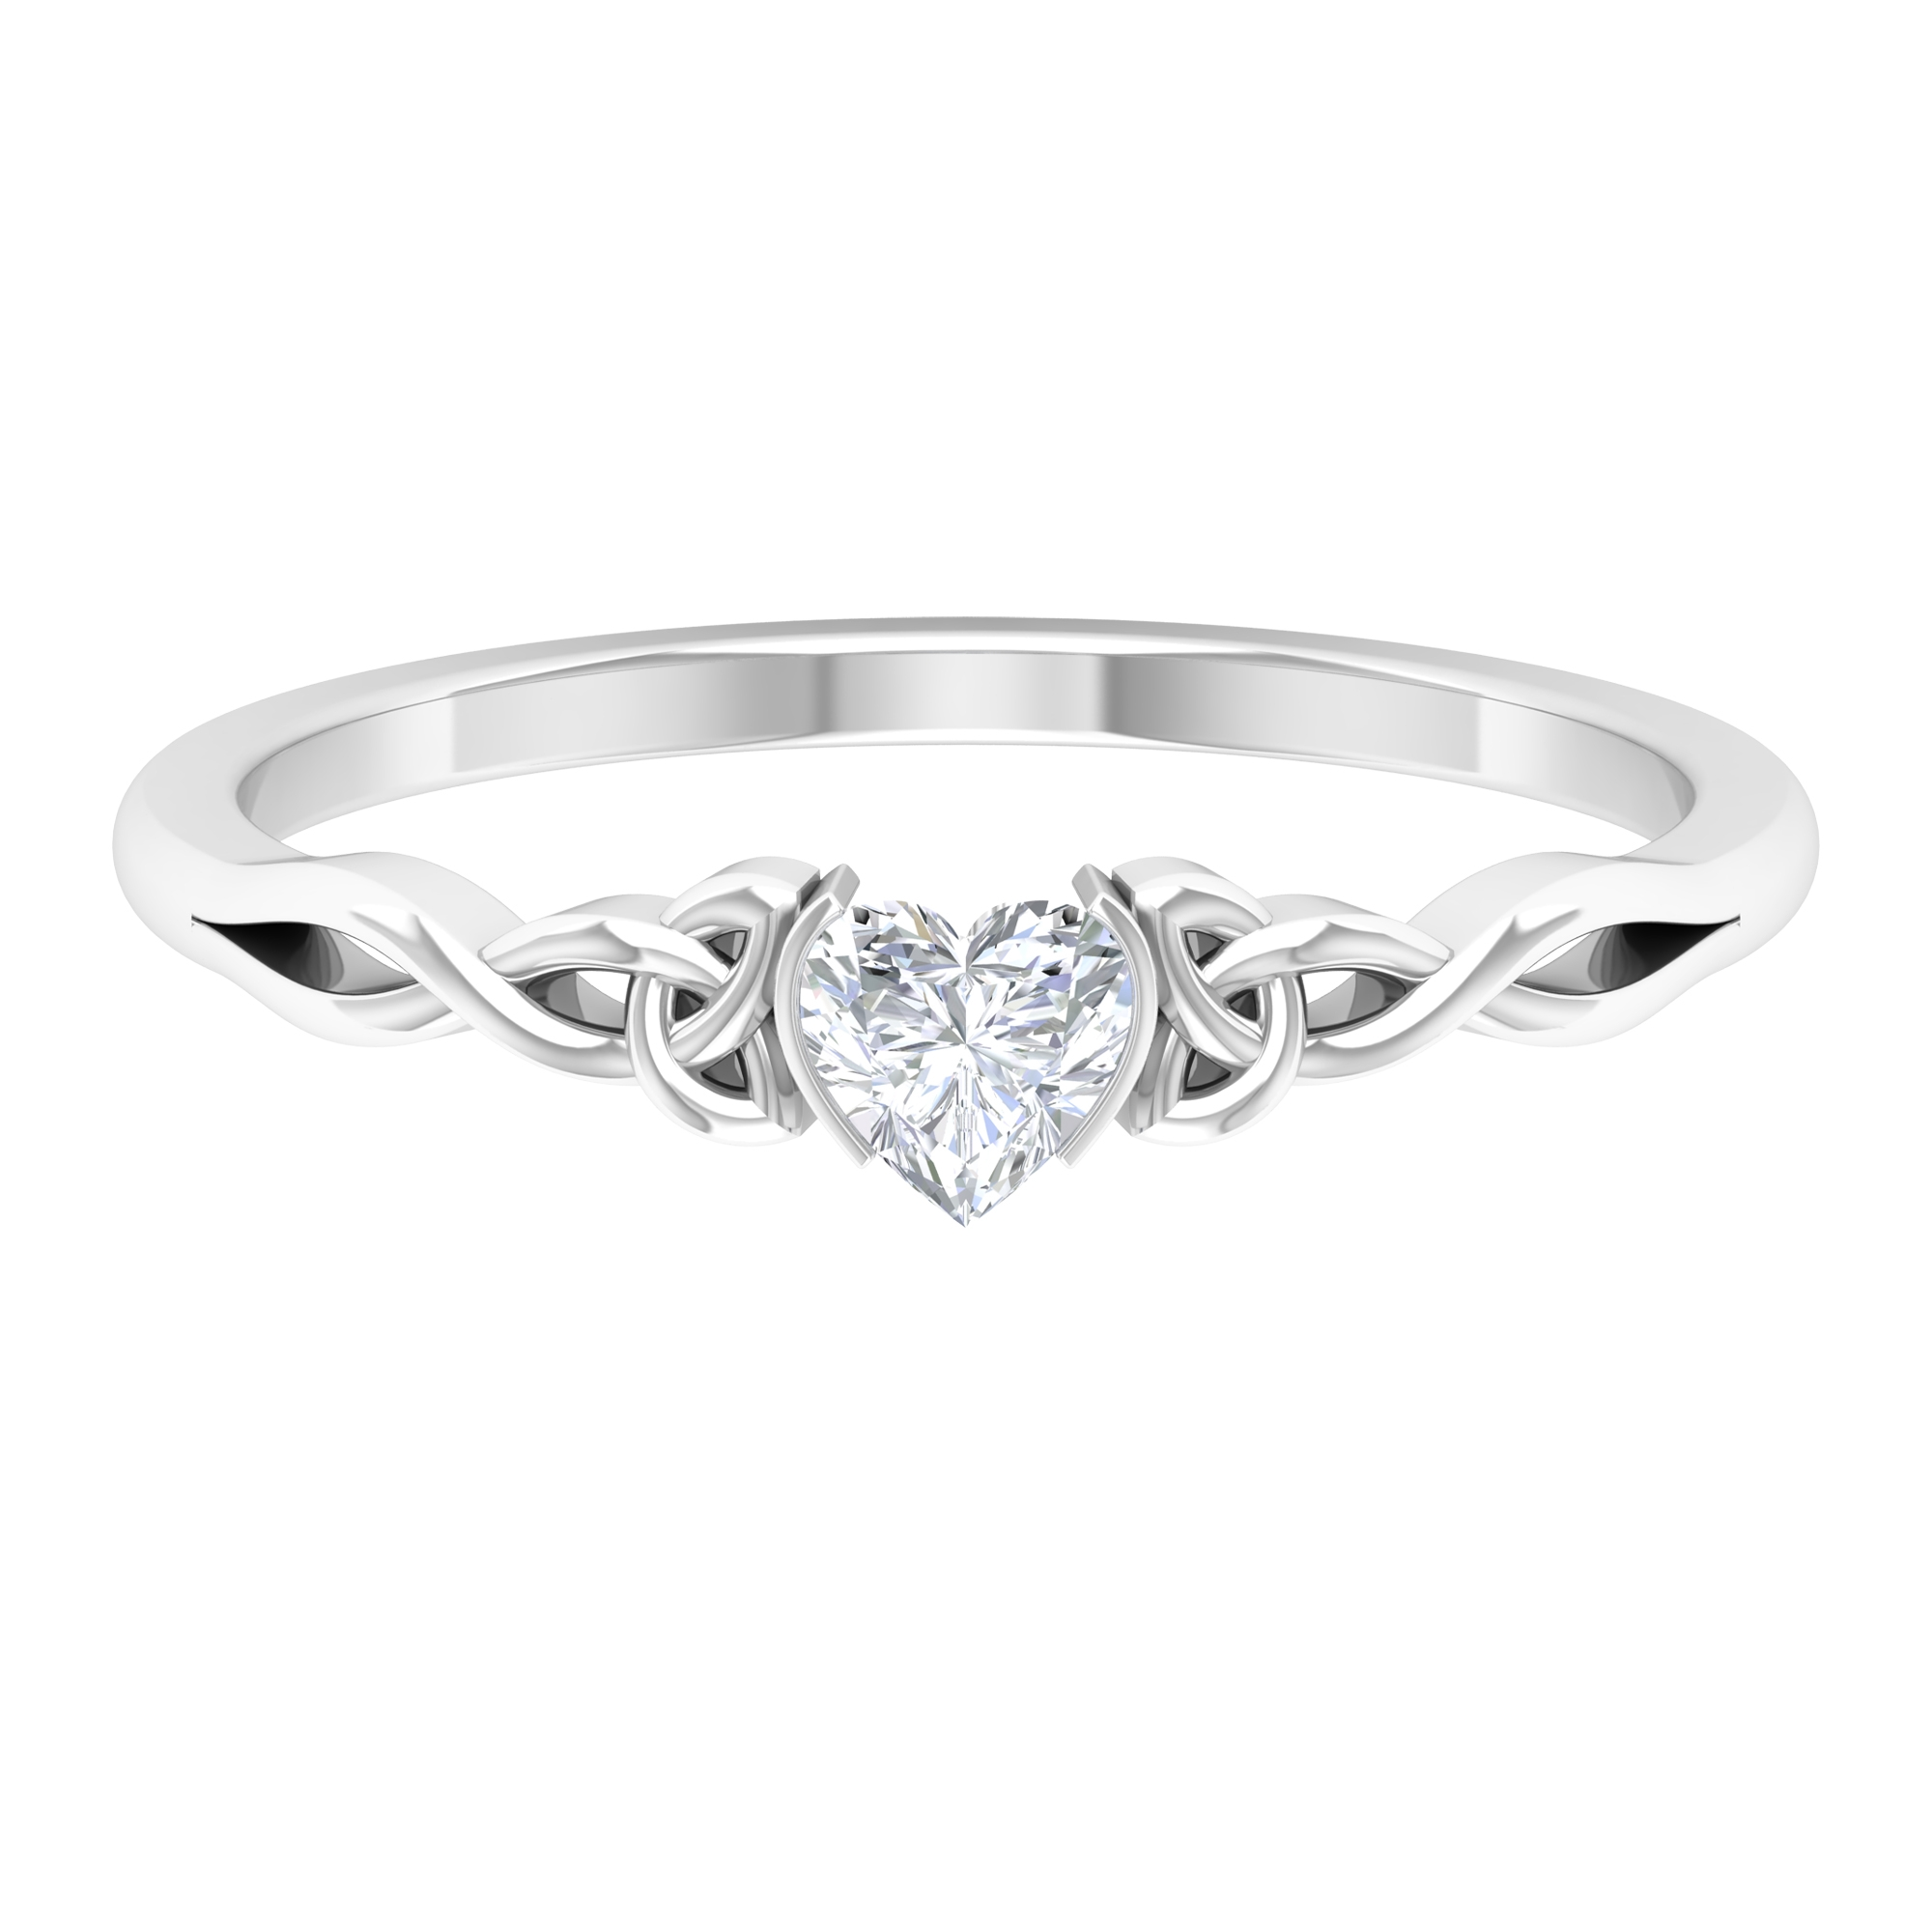 4 MM Heart Shape Diamond Solitaire Ring in Half Bezel Setting with Celtic Band